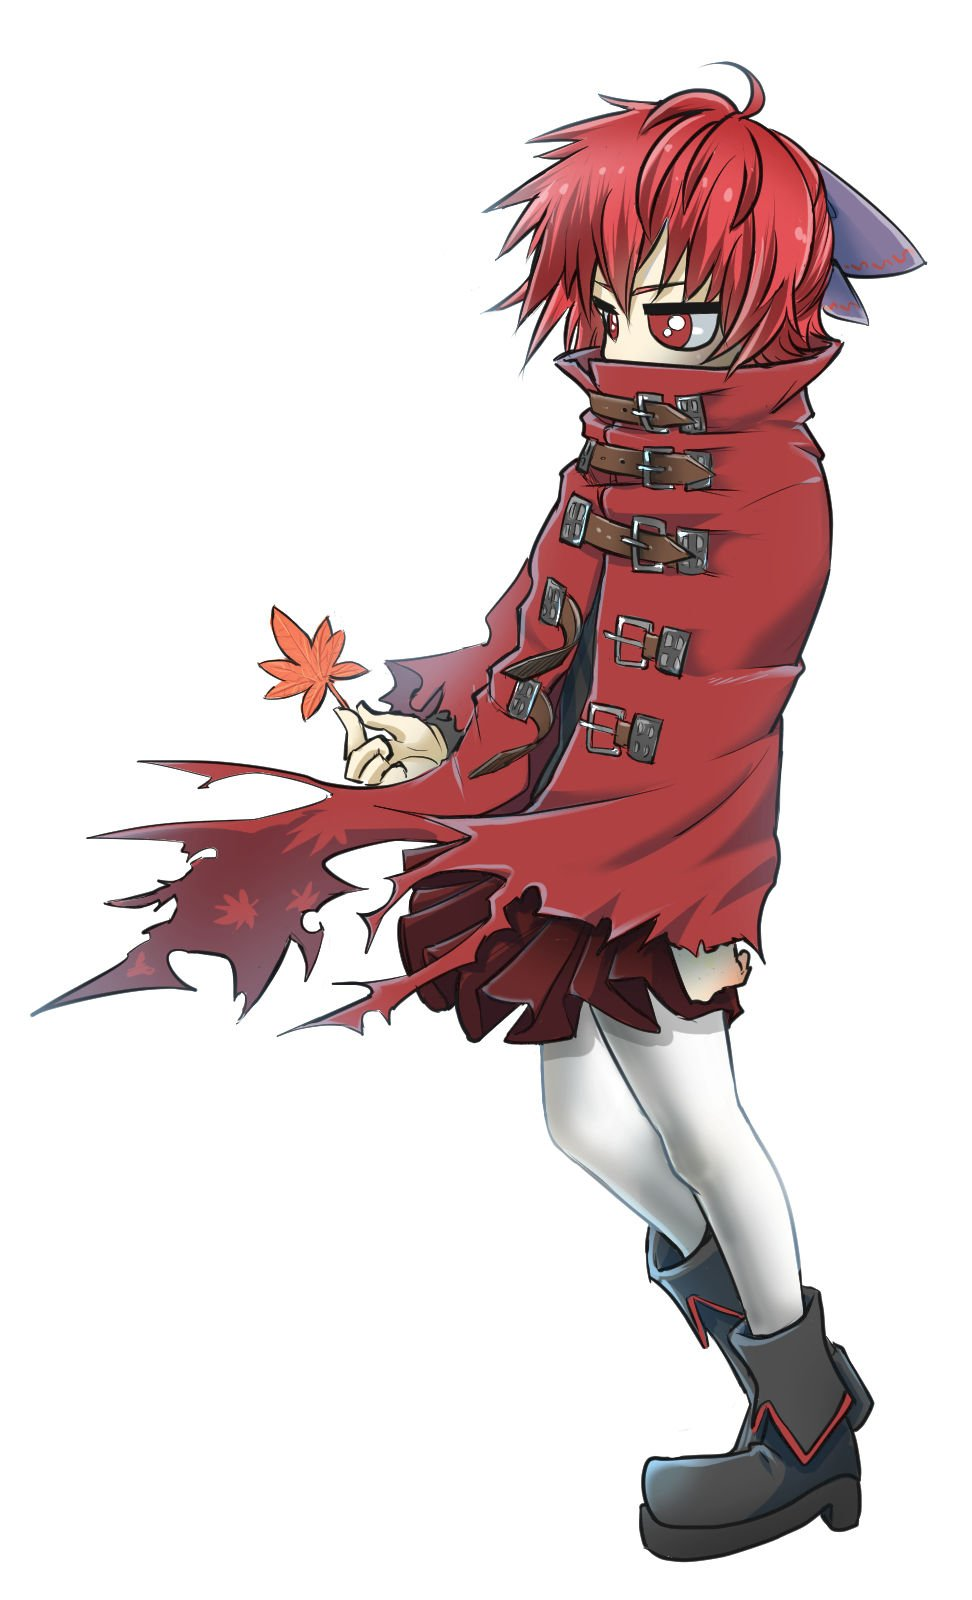 1girl ahoge belt belt_buckle boots bow buckle cape chamaji clenched_hand covered_mouth full_body hair_between_eyes hair_bow highres holding holding_leaf jitome leaf pantyhose red_eyes red_skirt redhead sekibanki short_hair simple_background skirt solo torn_cape torn_clothes touhou unbuckled_belt white_background white_legwear